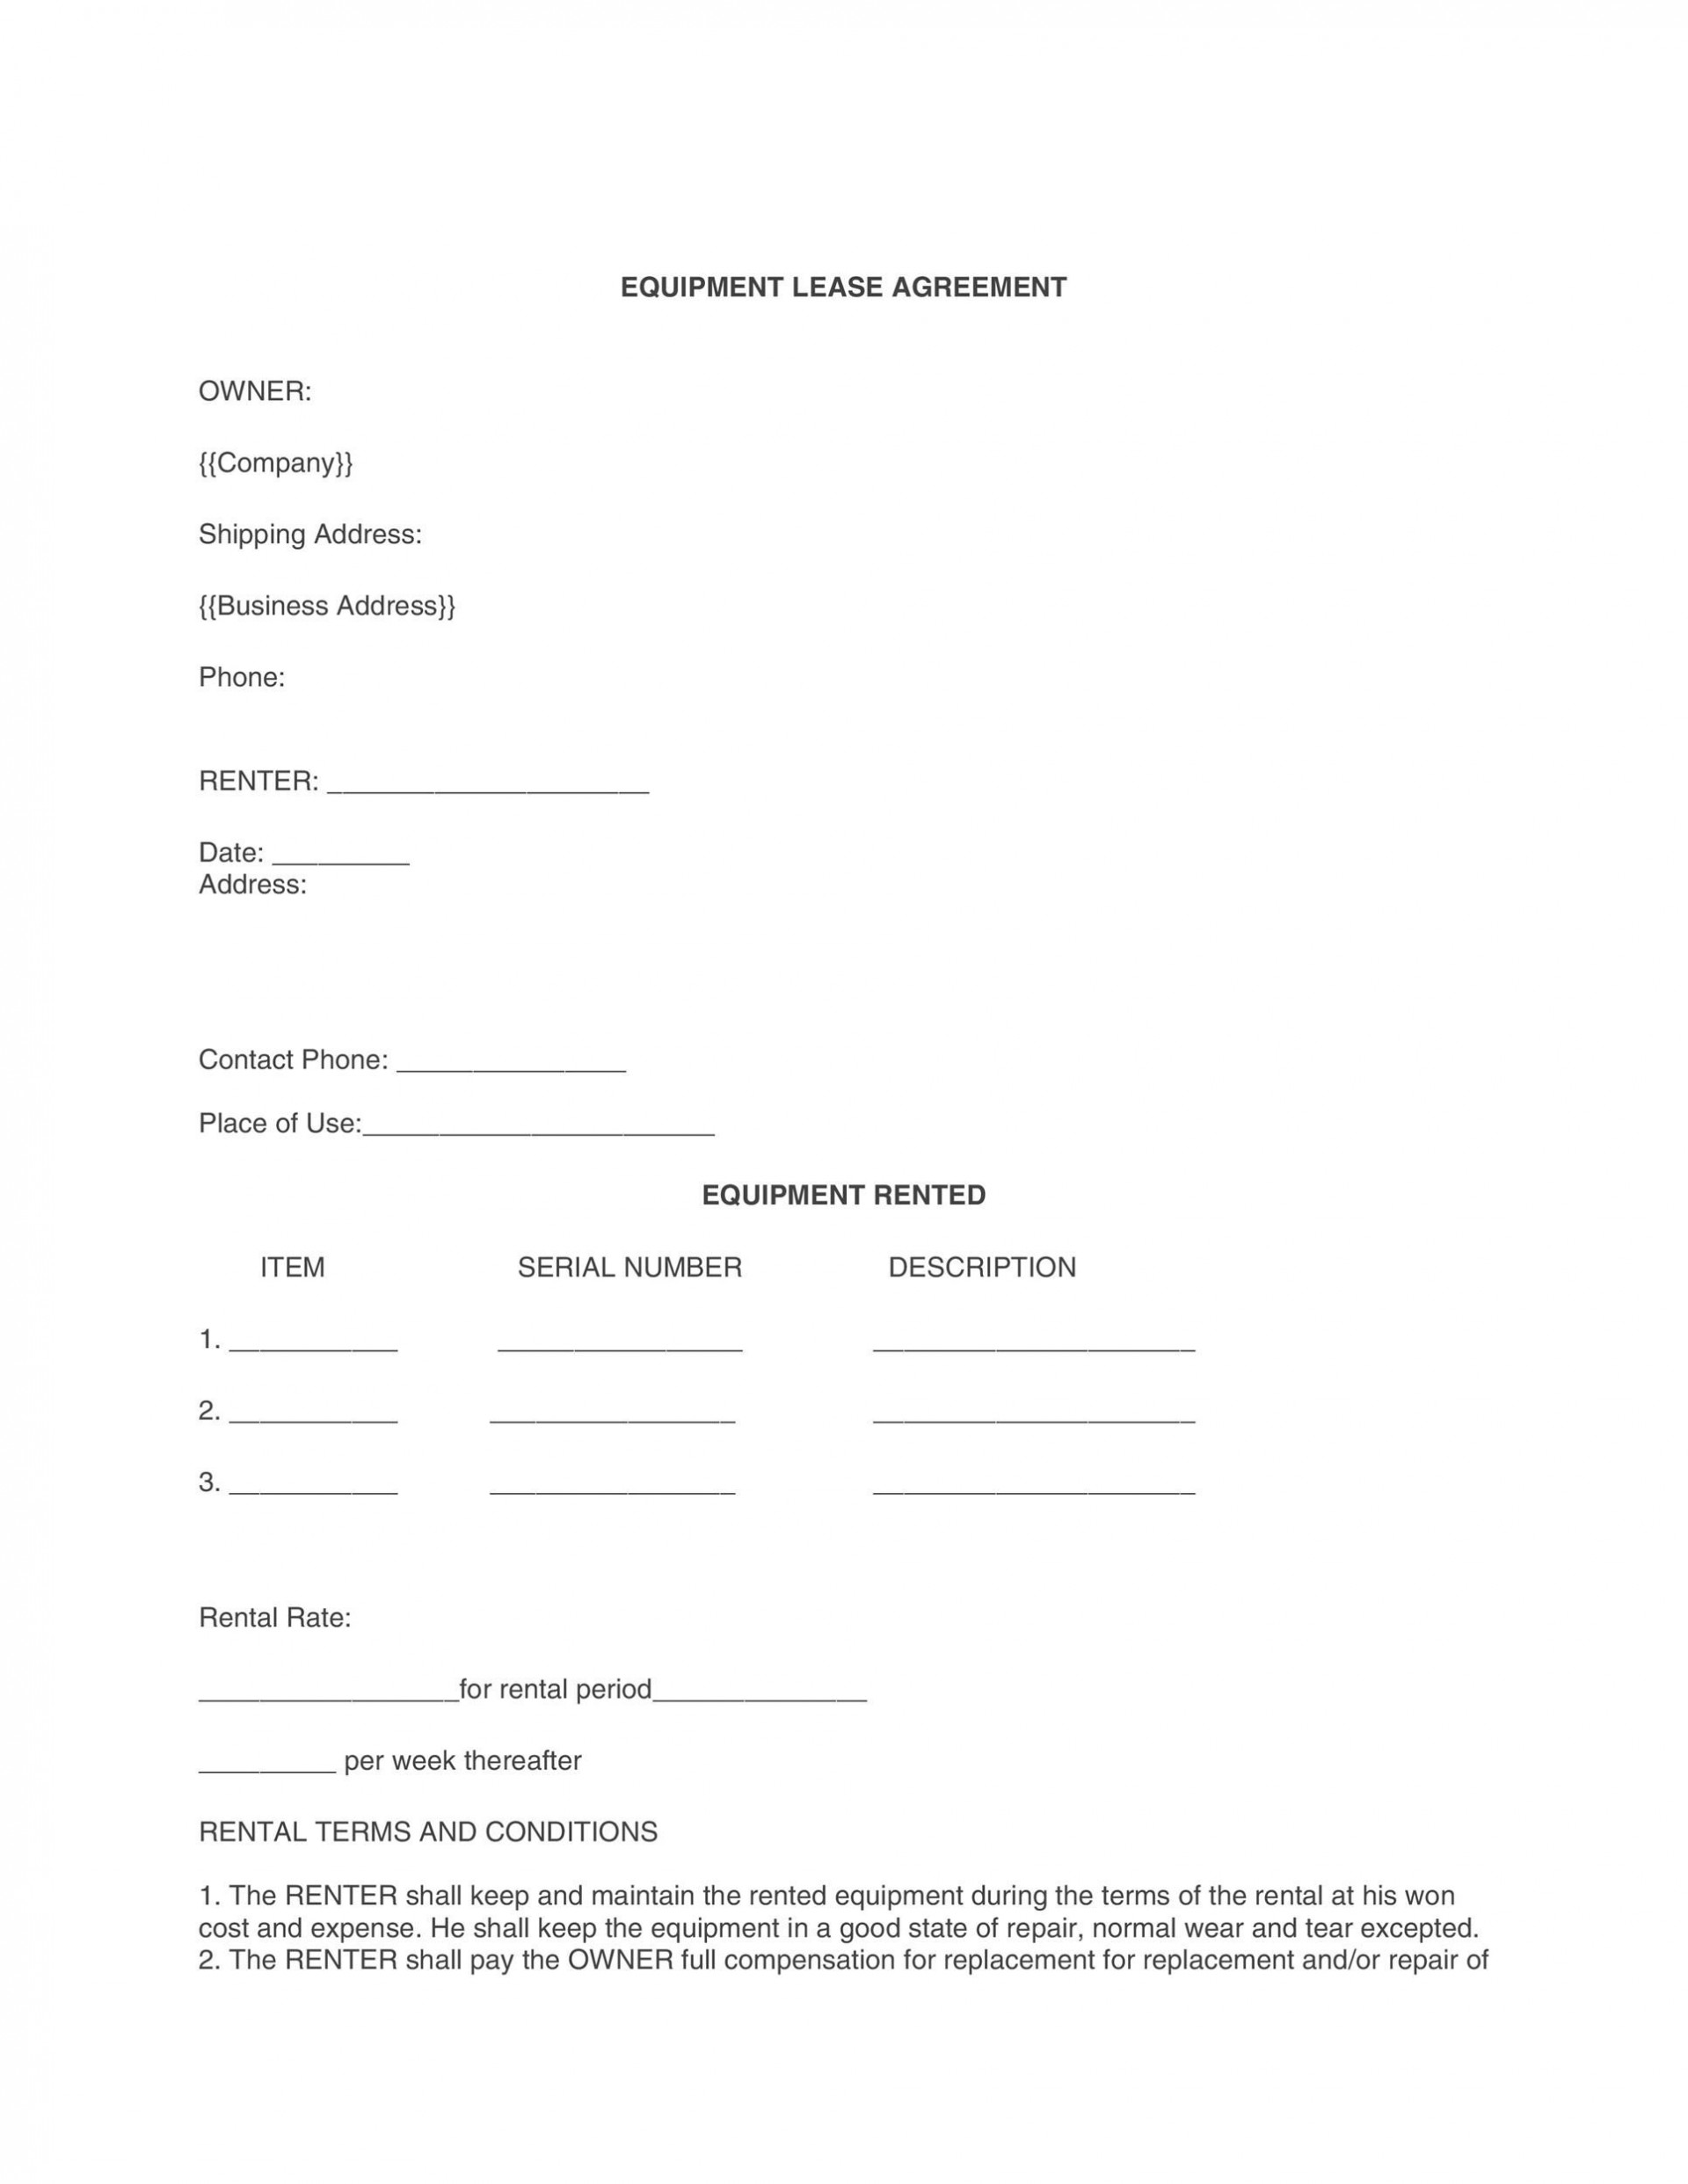 008 Remarkable Equipment Lease Contract Template Free Example  Agreement Word1920